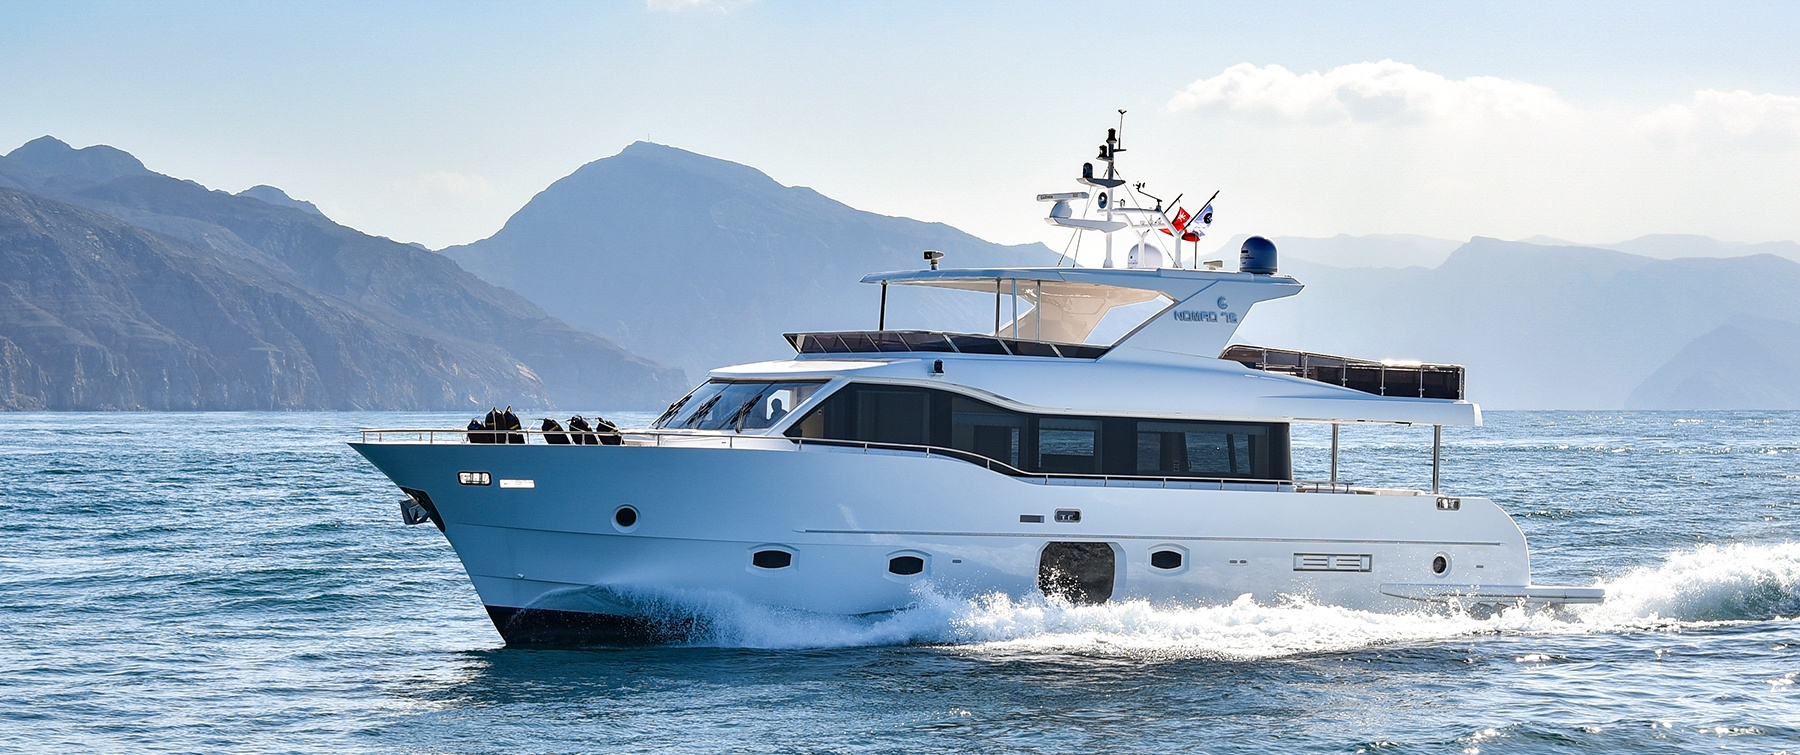 The luxurious Nomad 75 Yacht